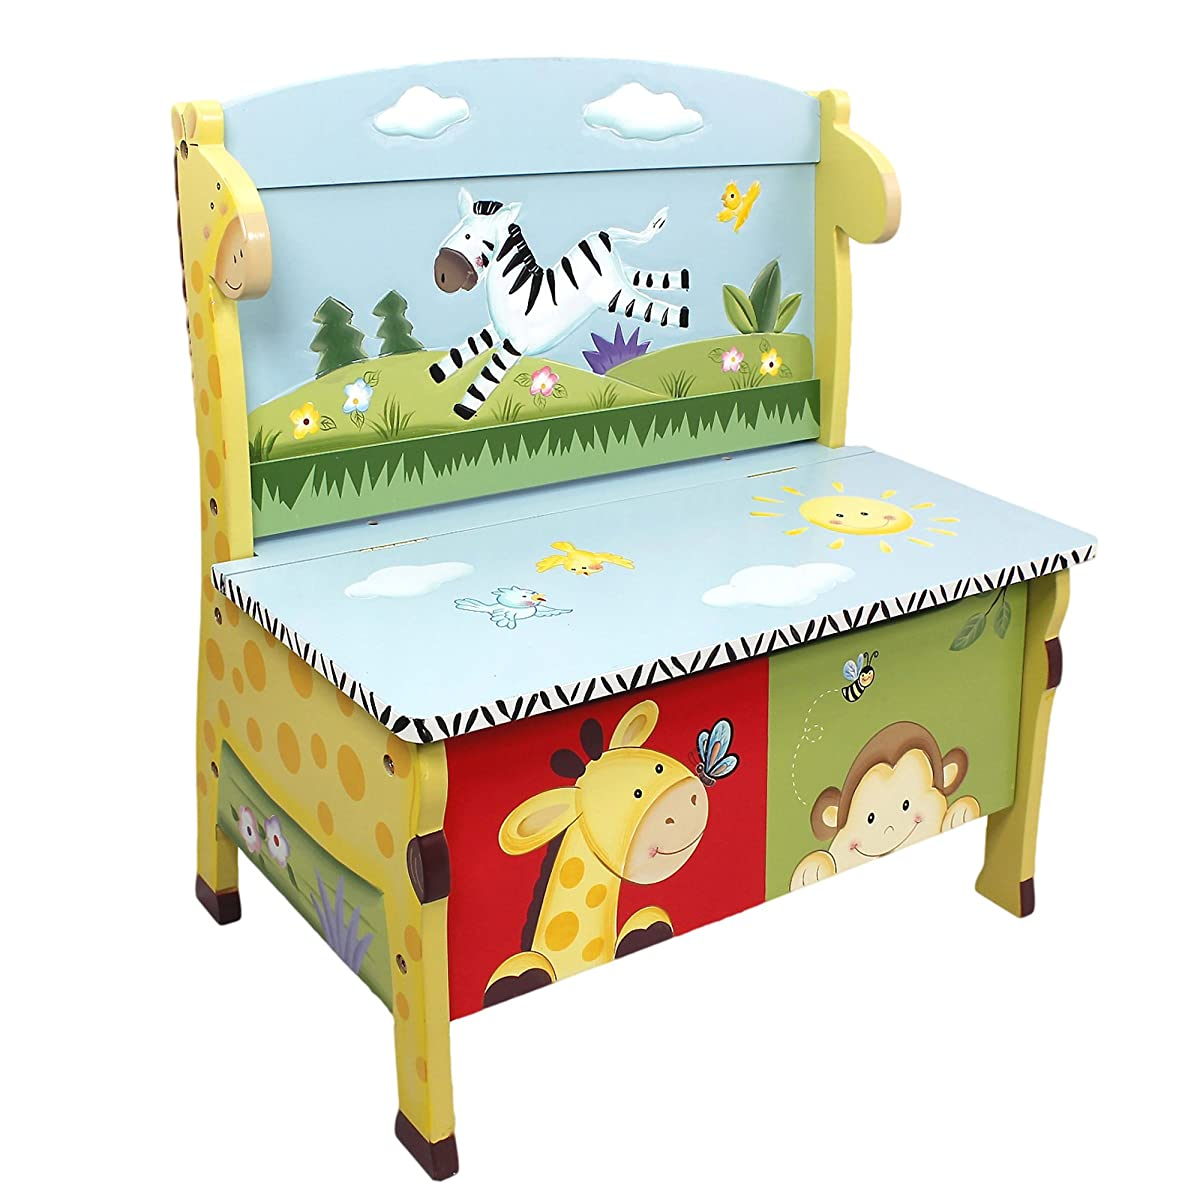 Sunny Safari Animals Thematic Kids Storage Bench| Imagination Inspiring Hand Crafted